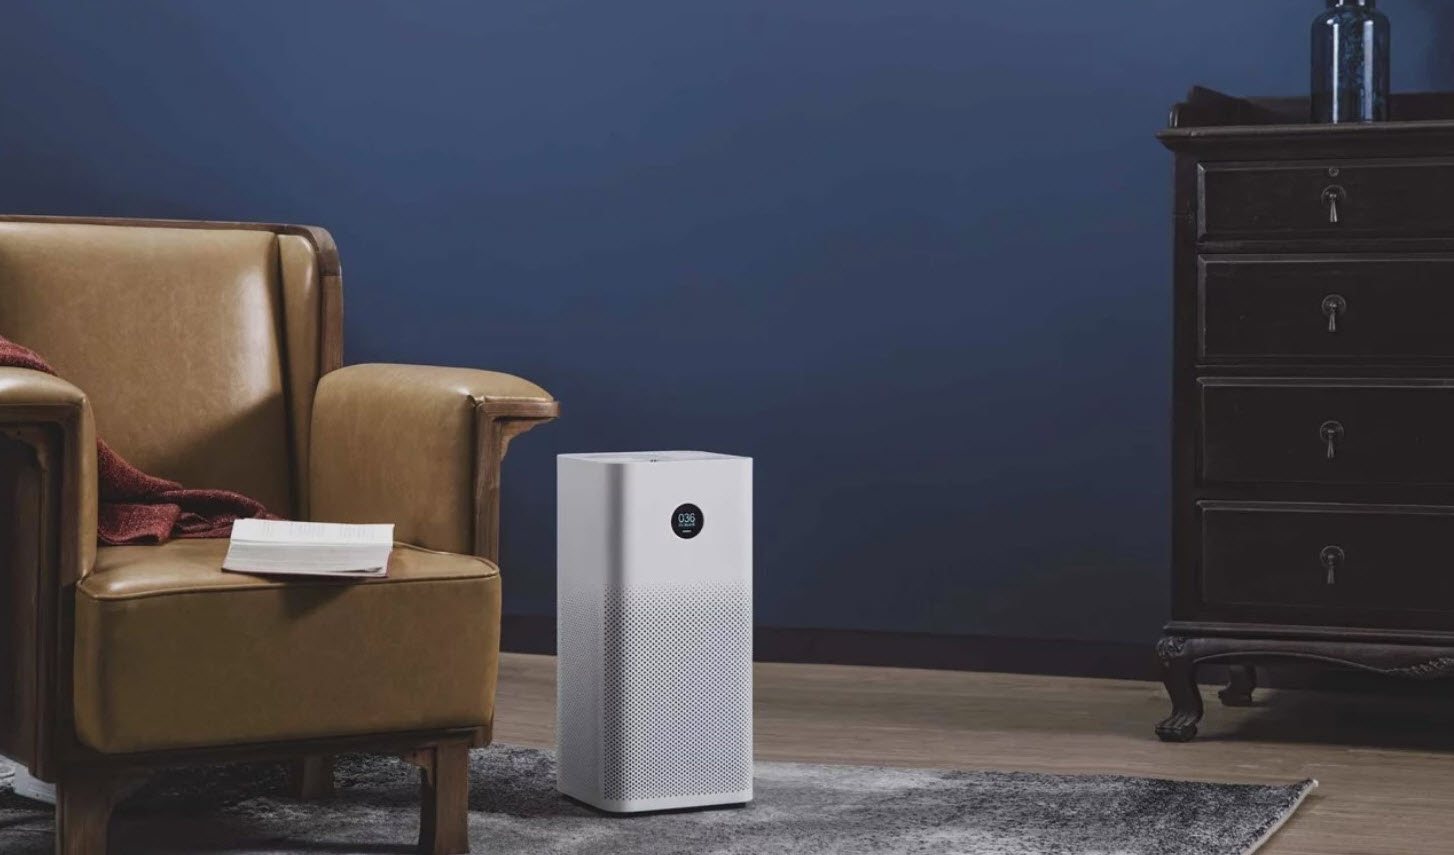 Mi Air Purifier 2S - Who Doesn't Want Fresher Air In Their Home?